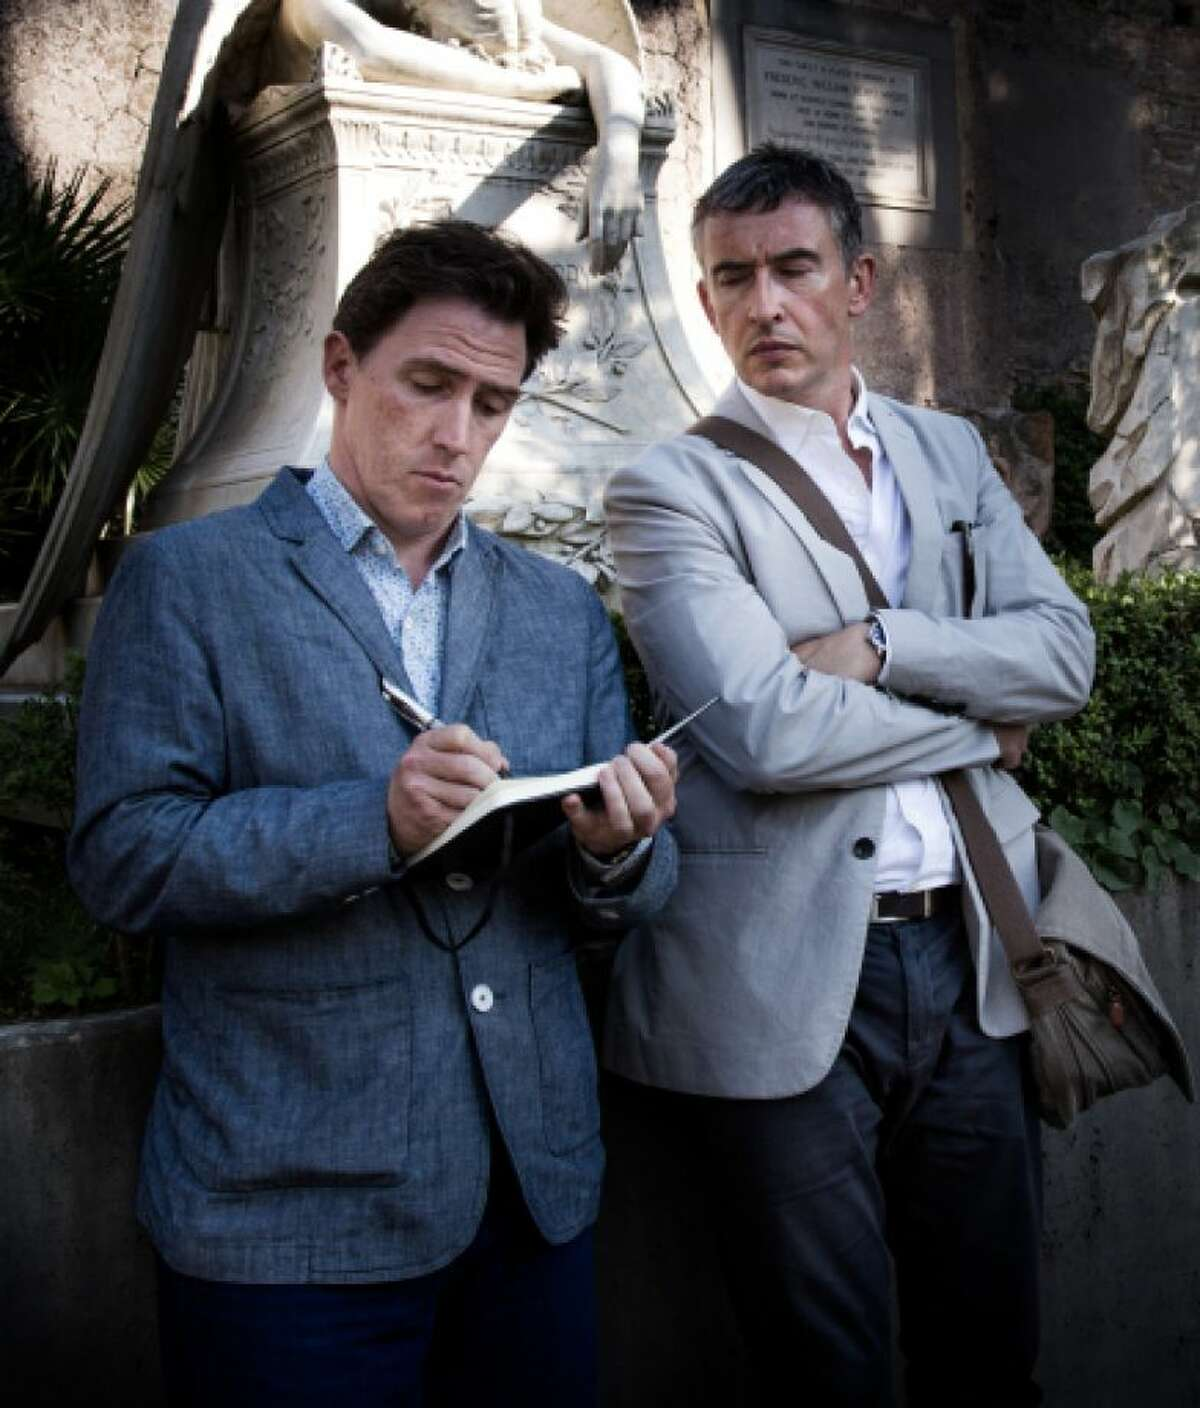 The Trip To Italy(2014) Rarely has a formula soured so quickly. Like the first installment,